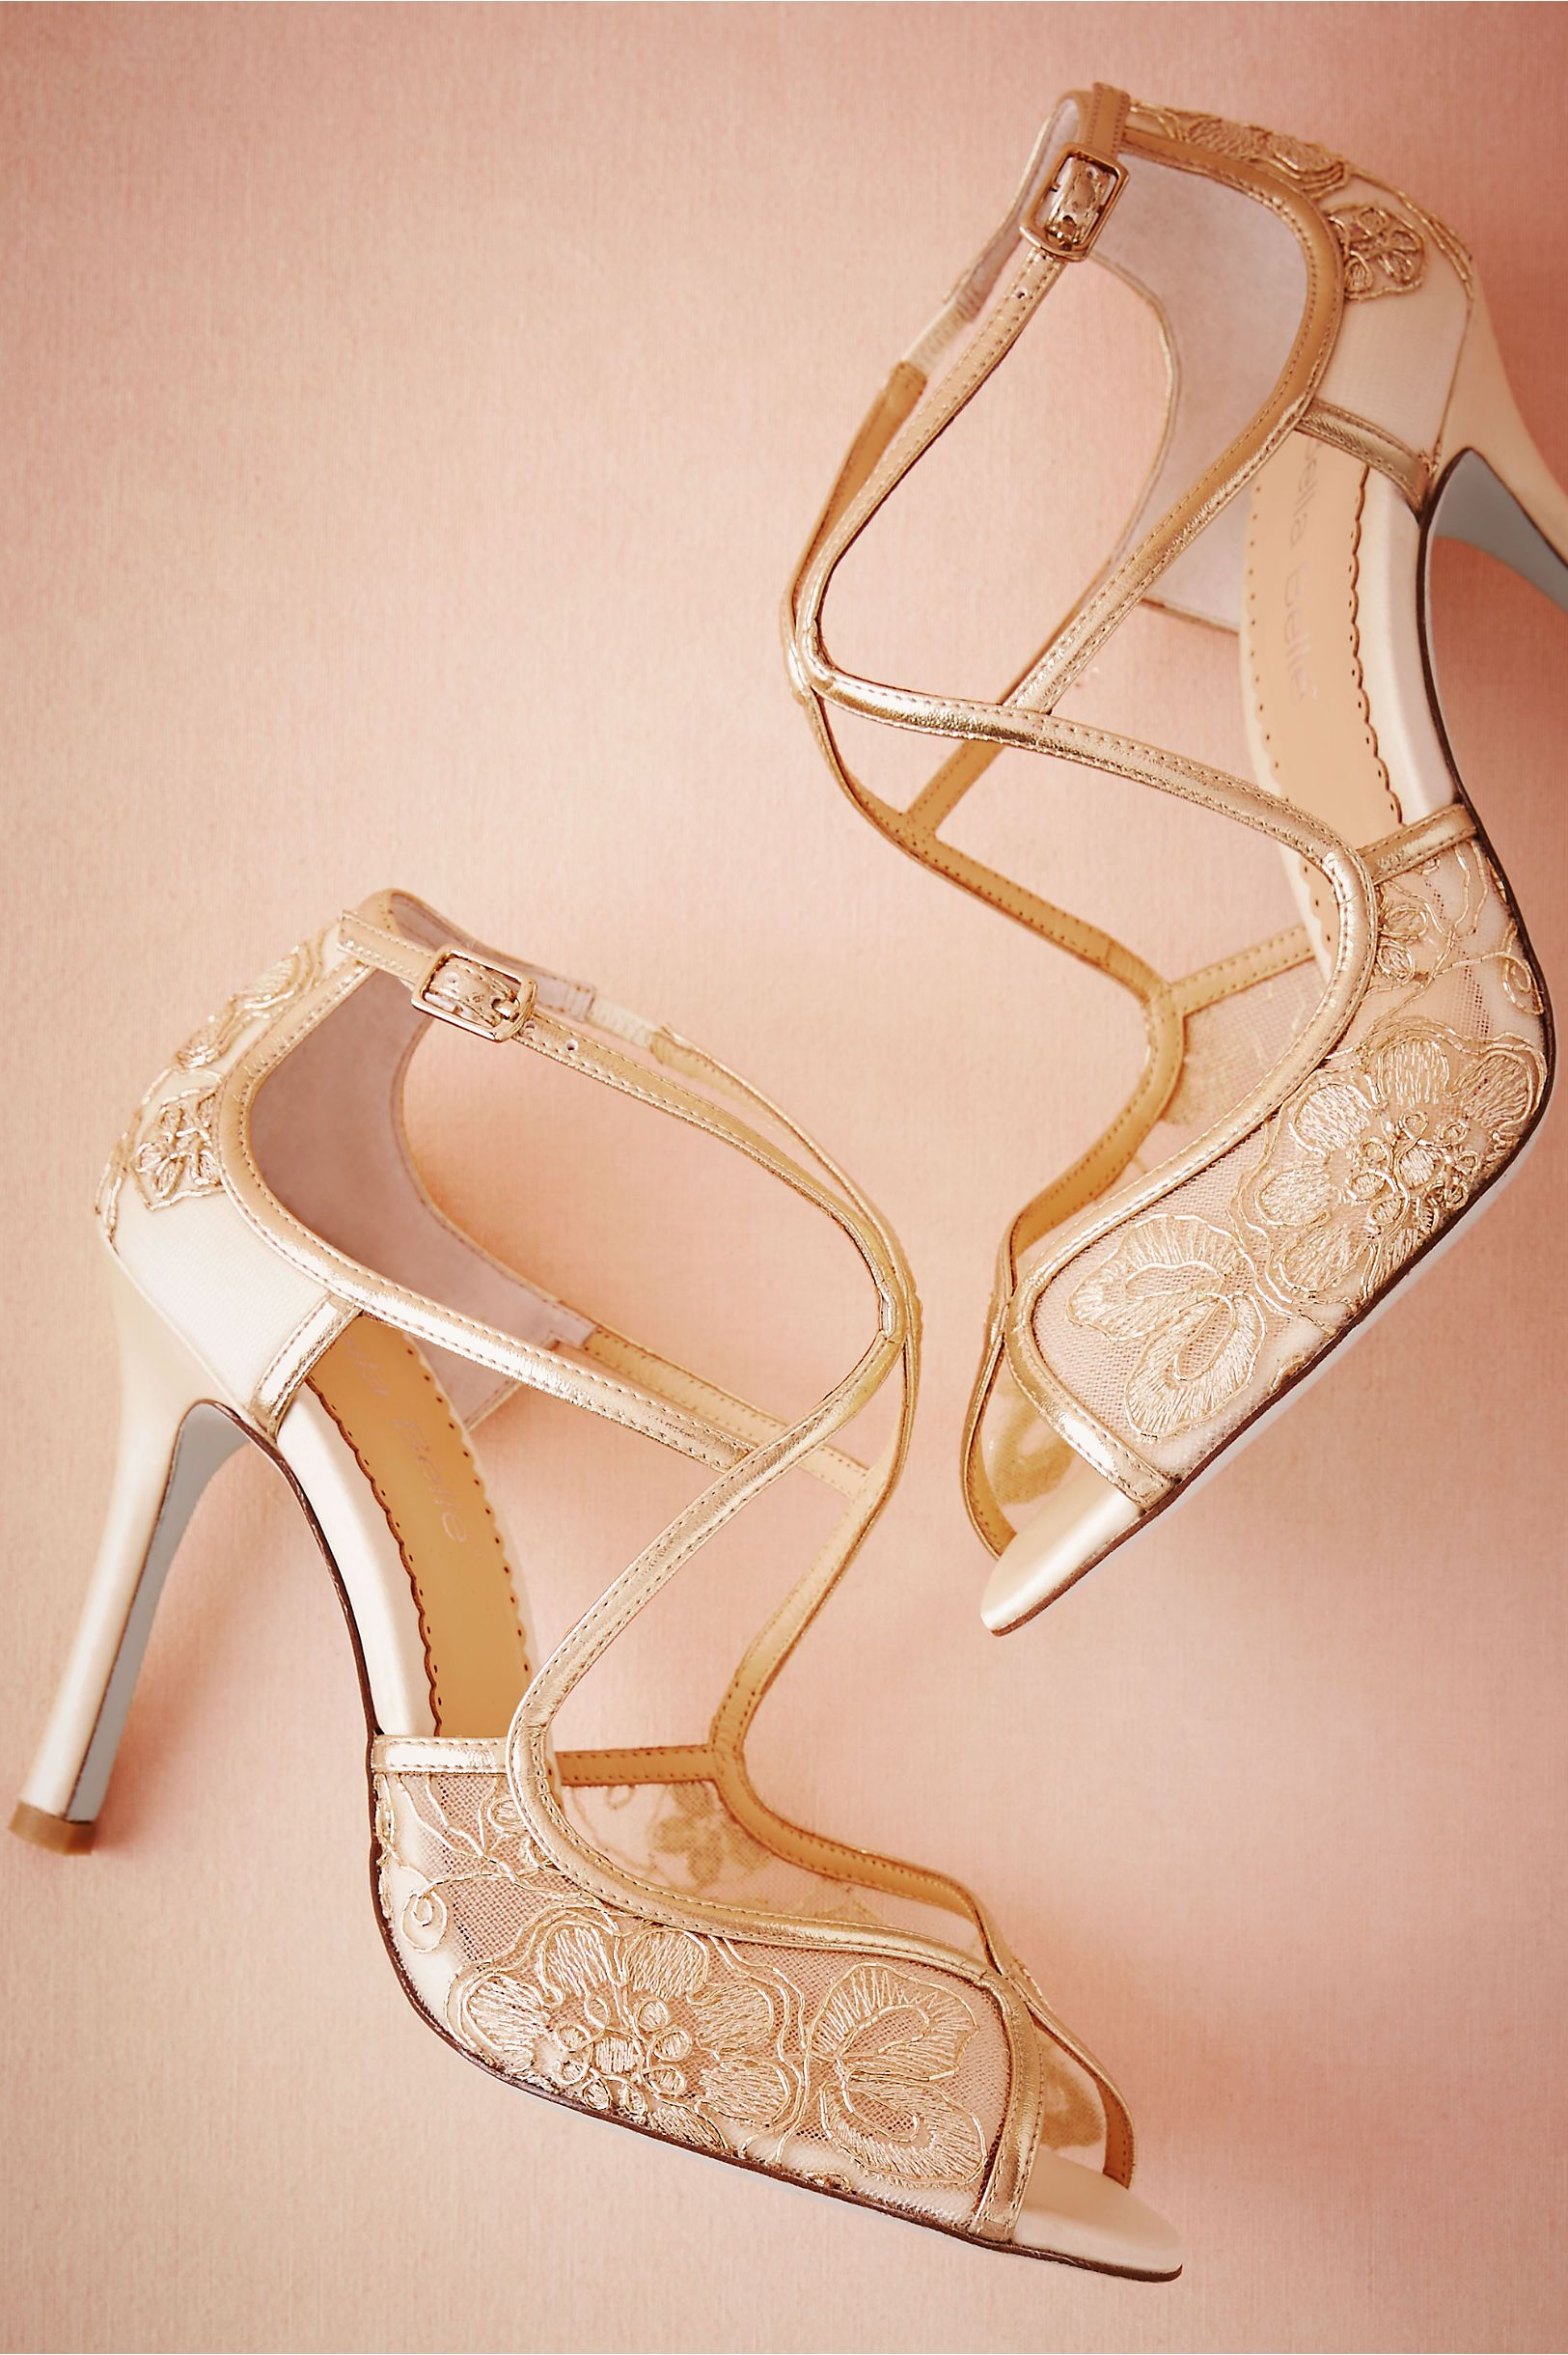 d7b86620d BHLDN Gilt Lace Heels in Shoes   Accessories Shoes at BHLDN